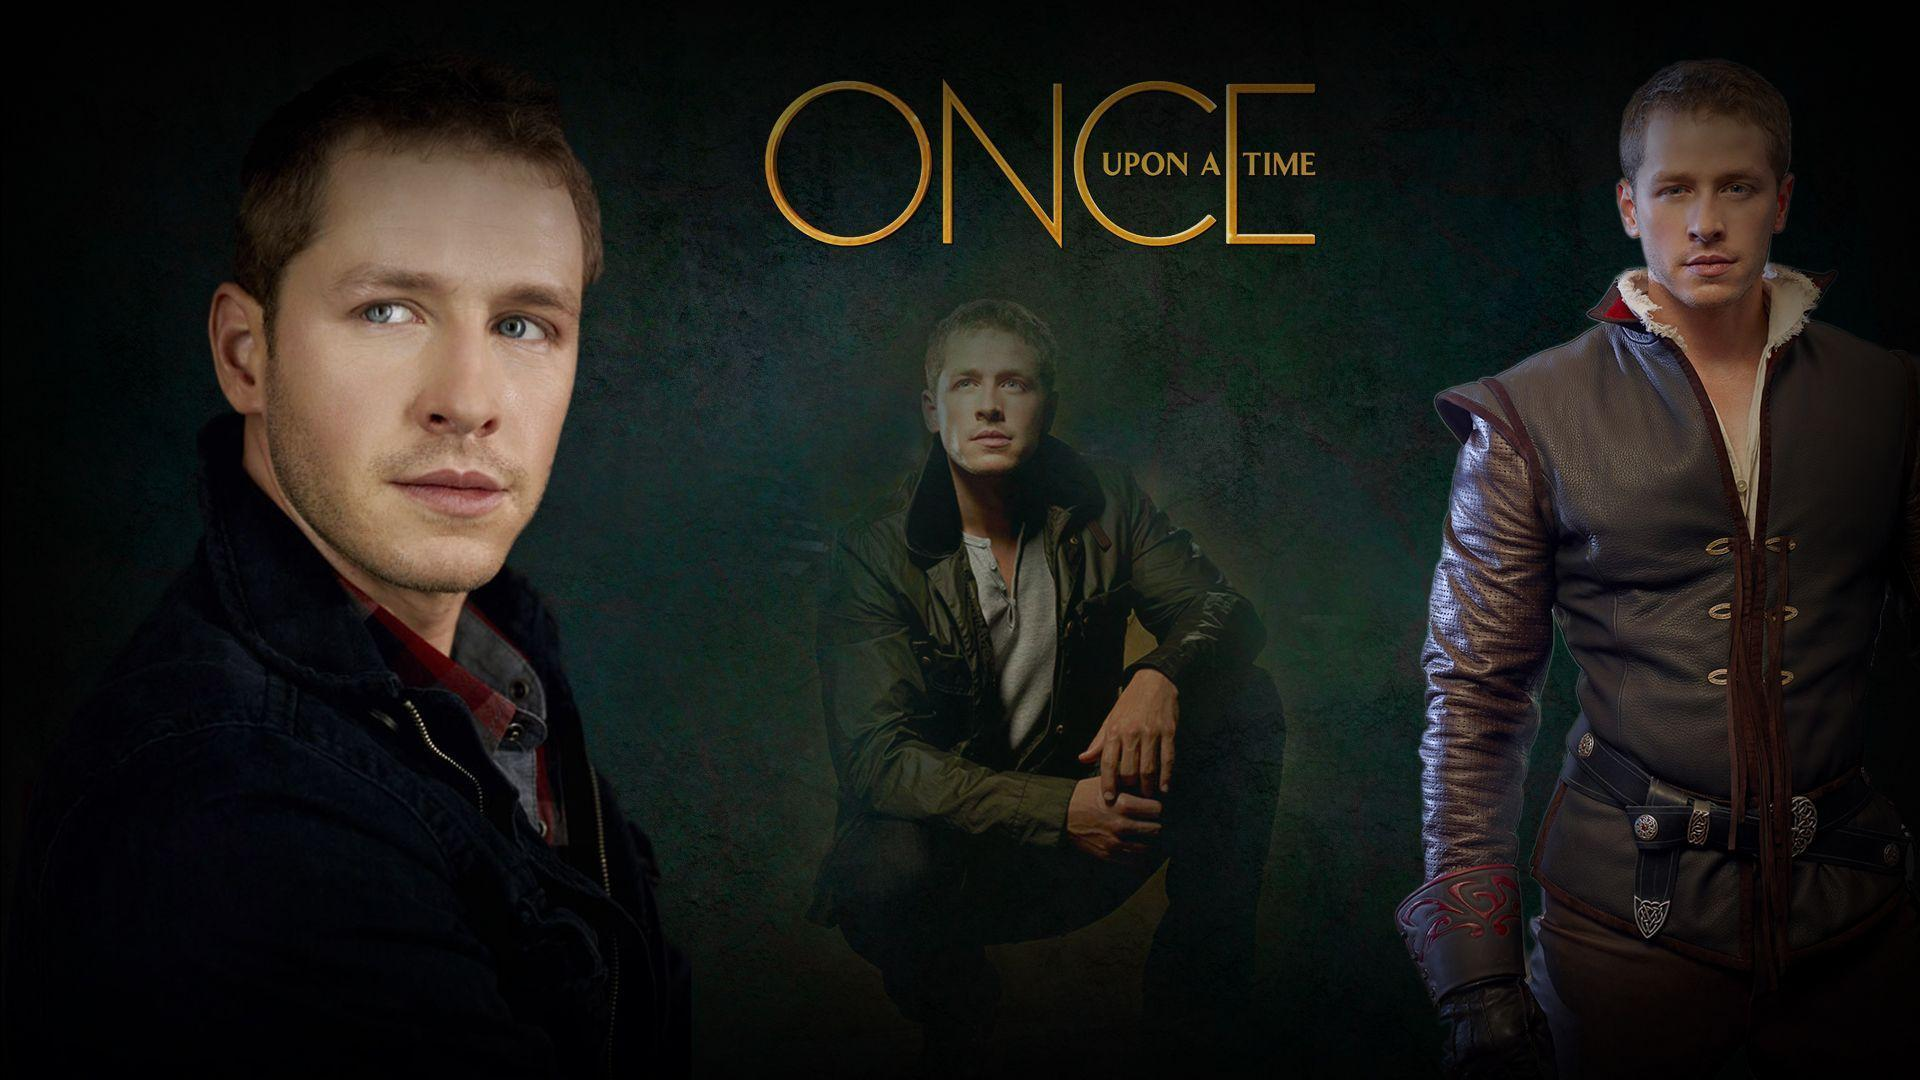 Once Upon a Time Wallpaper 10 by Alexandreholz on DeviantArt